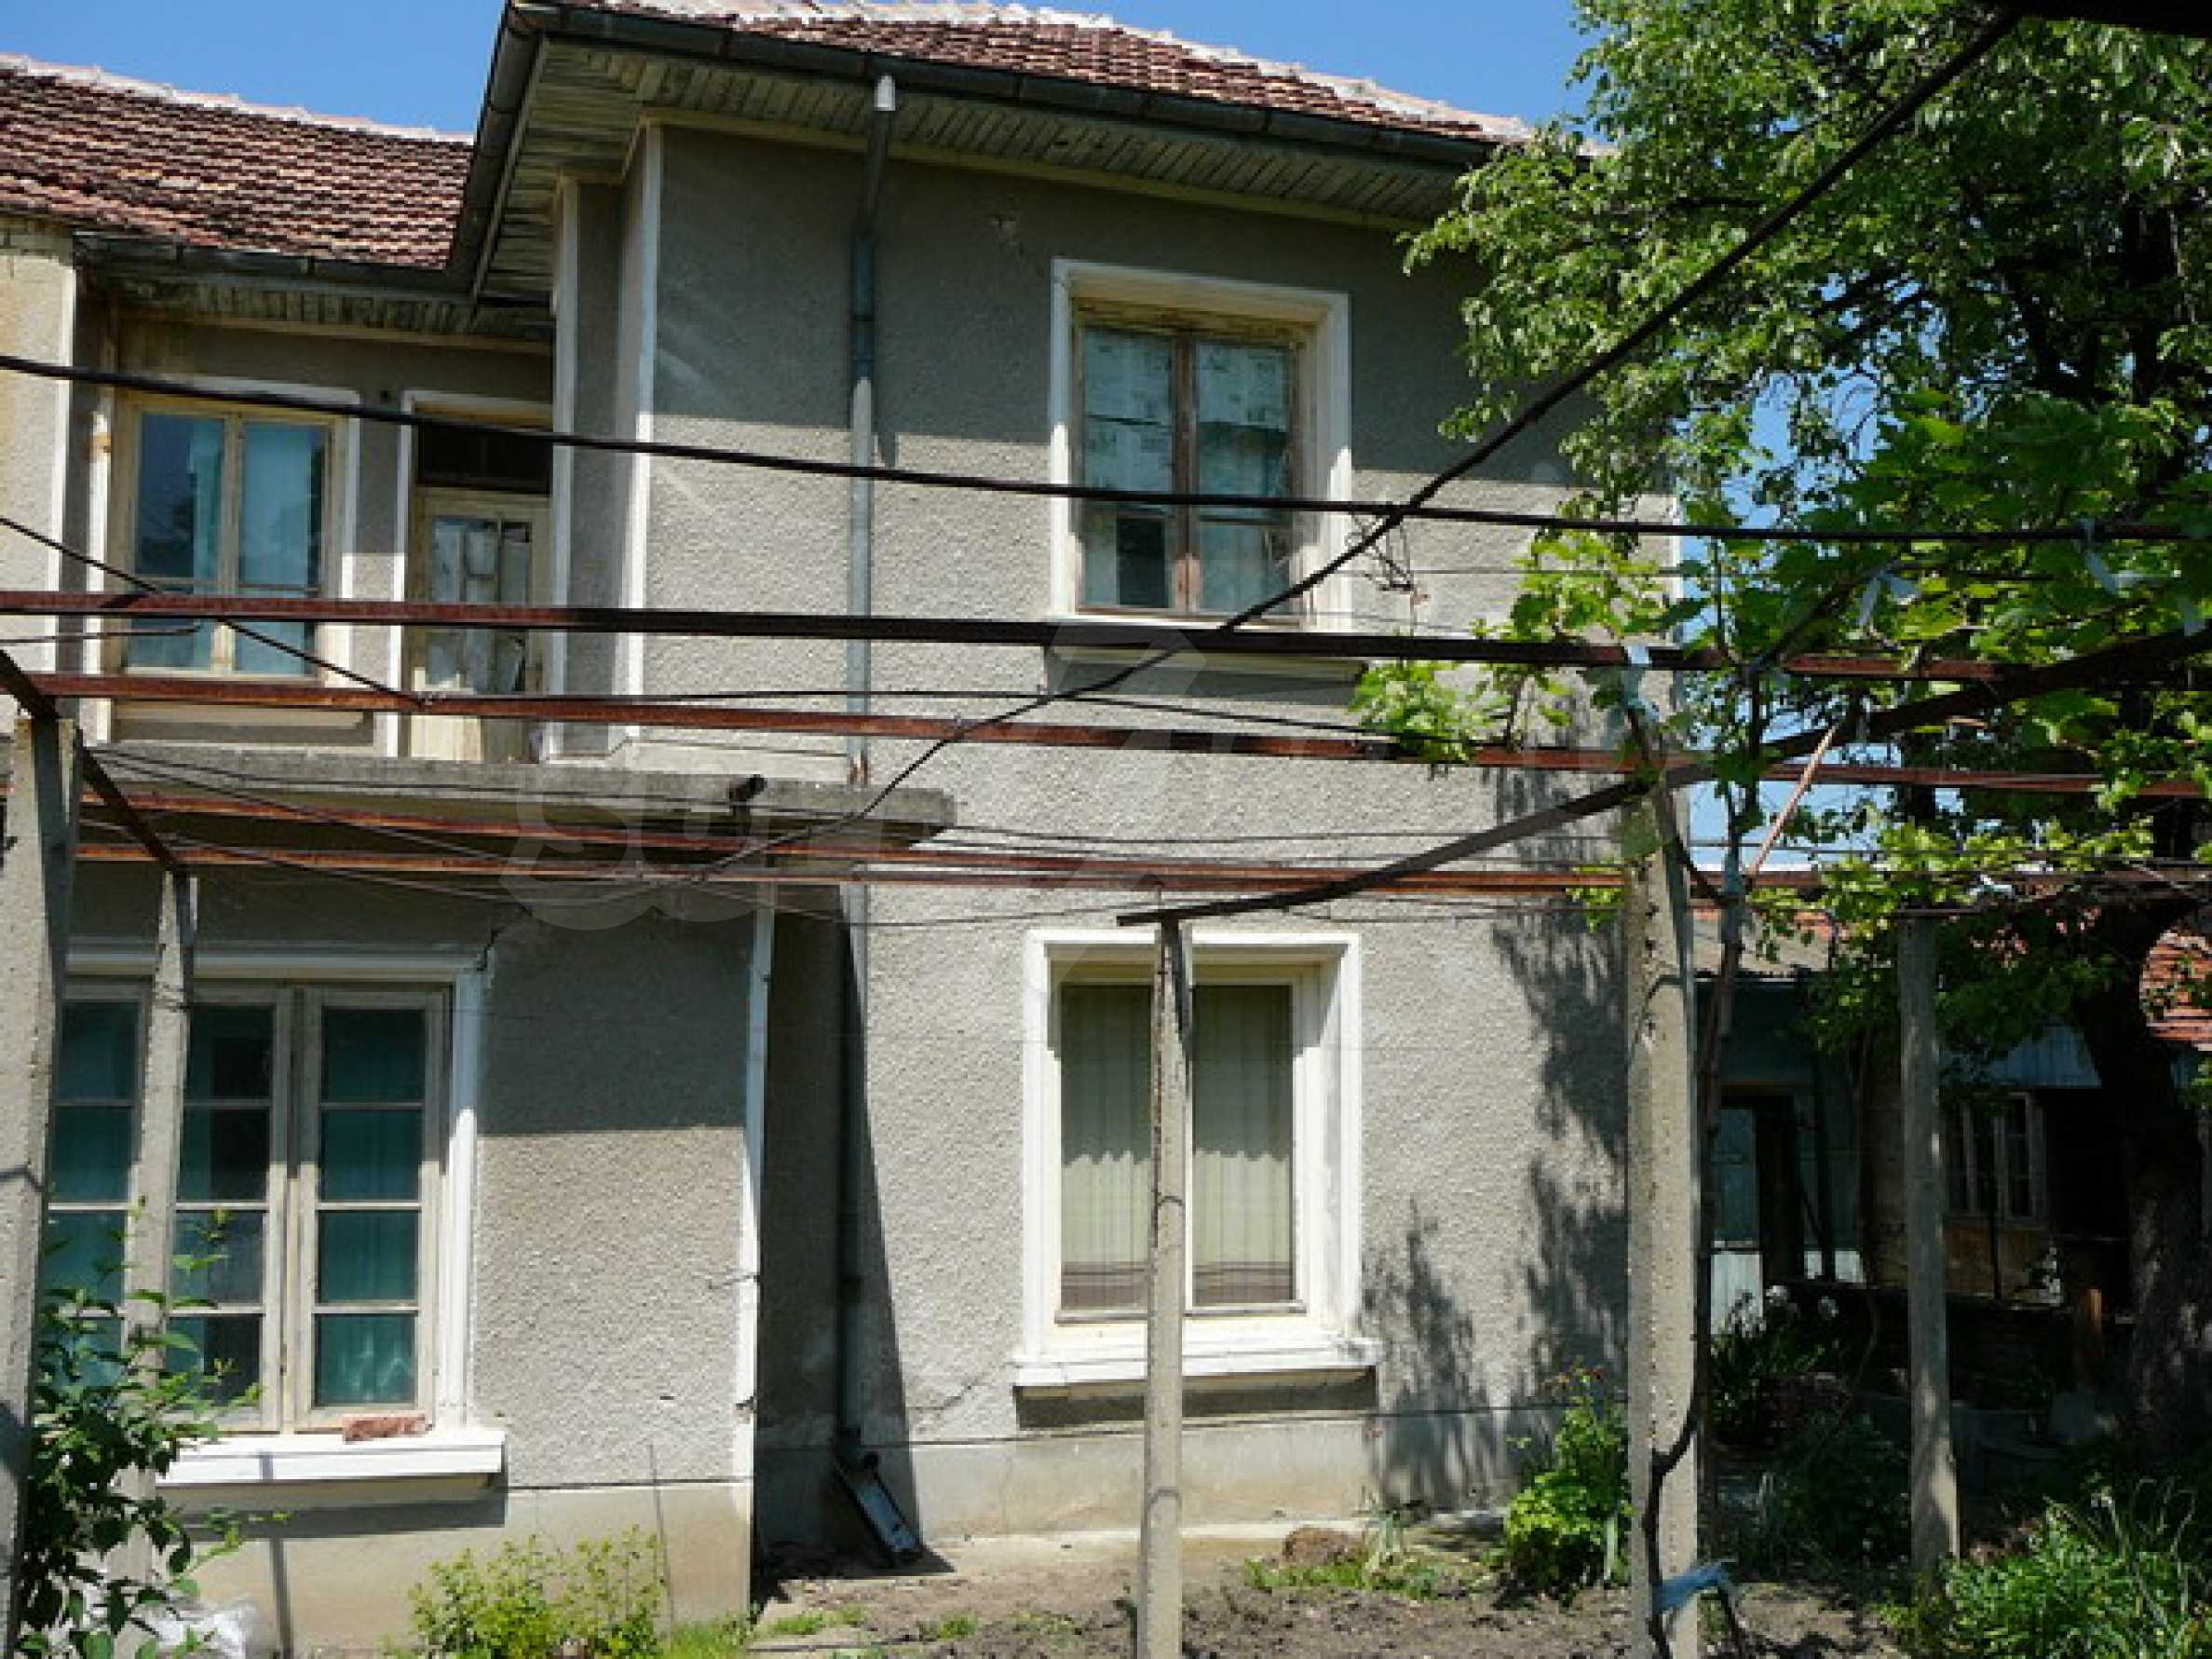 House for sale in a village close to Veliko Tarnovo